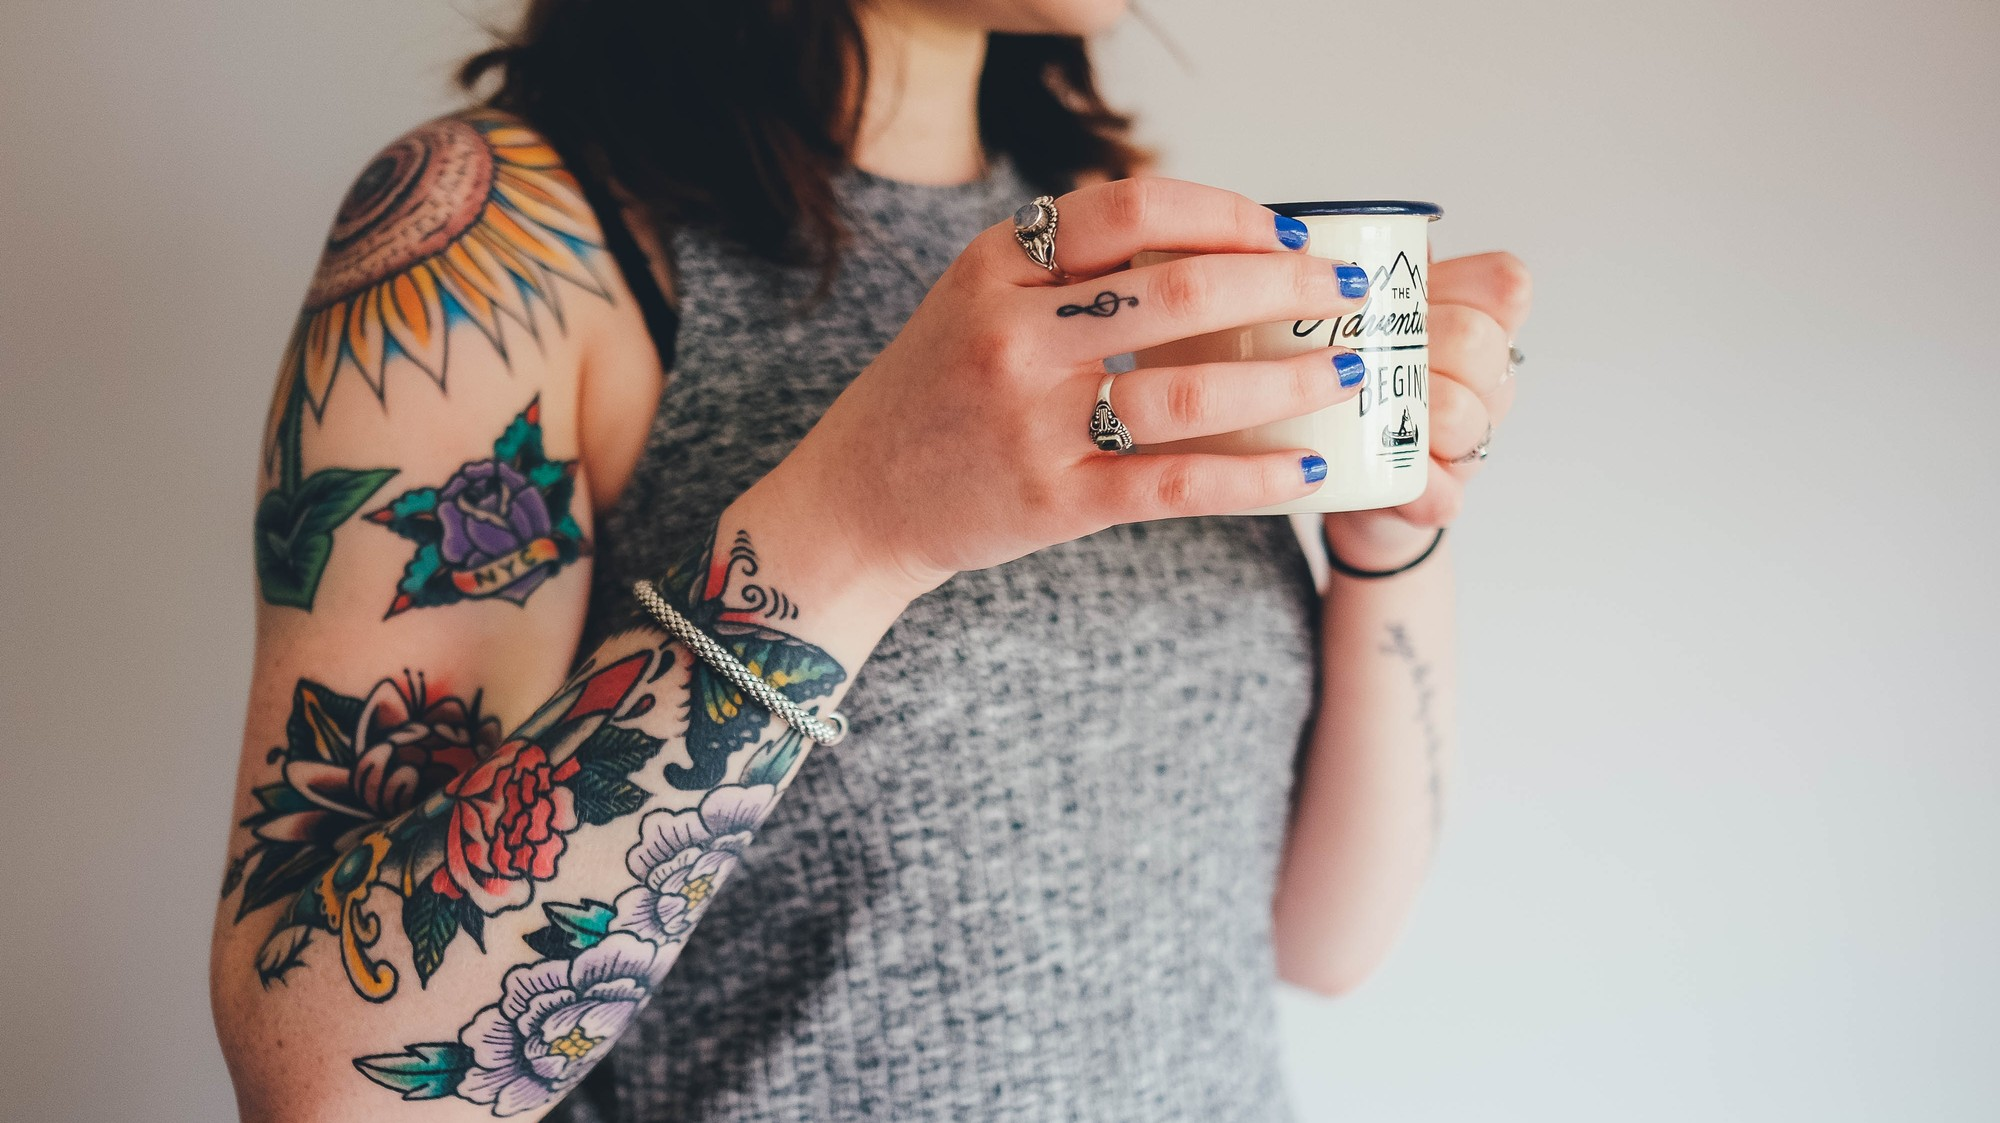 Tattoo Parlors Are Bragging About Their Healthy Vegan